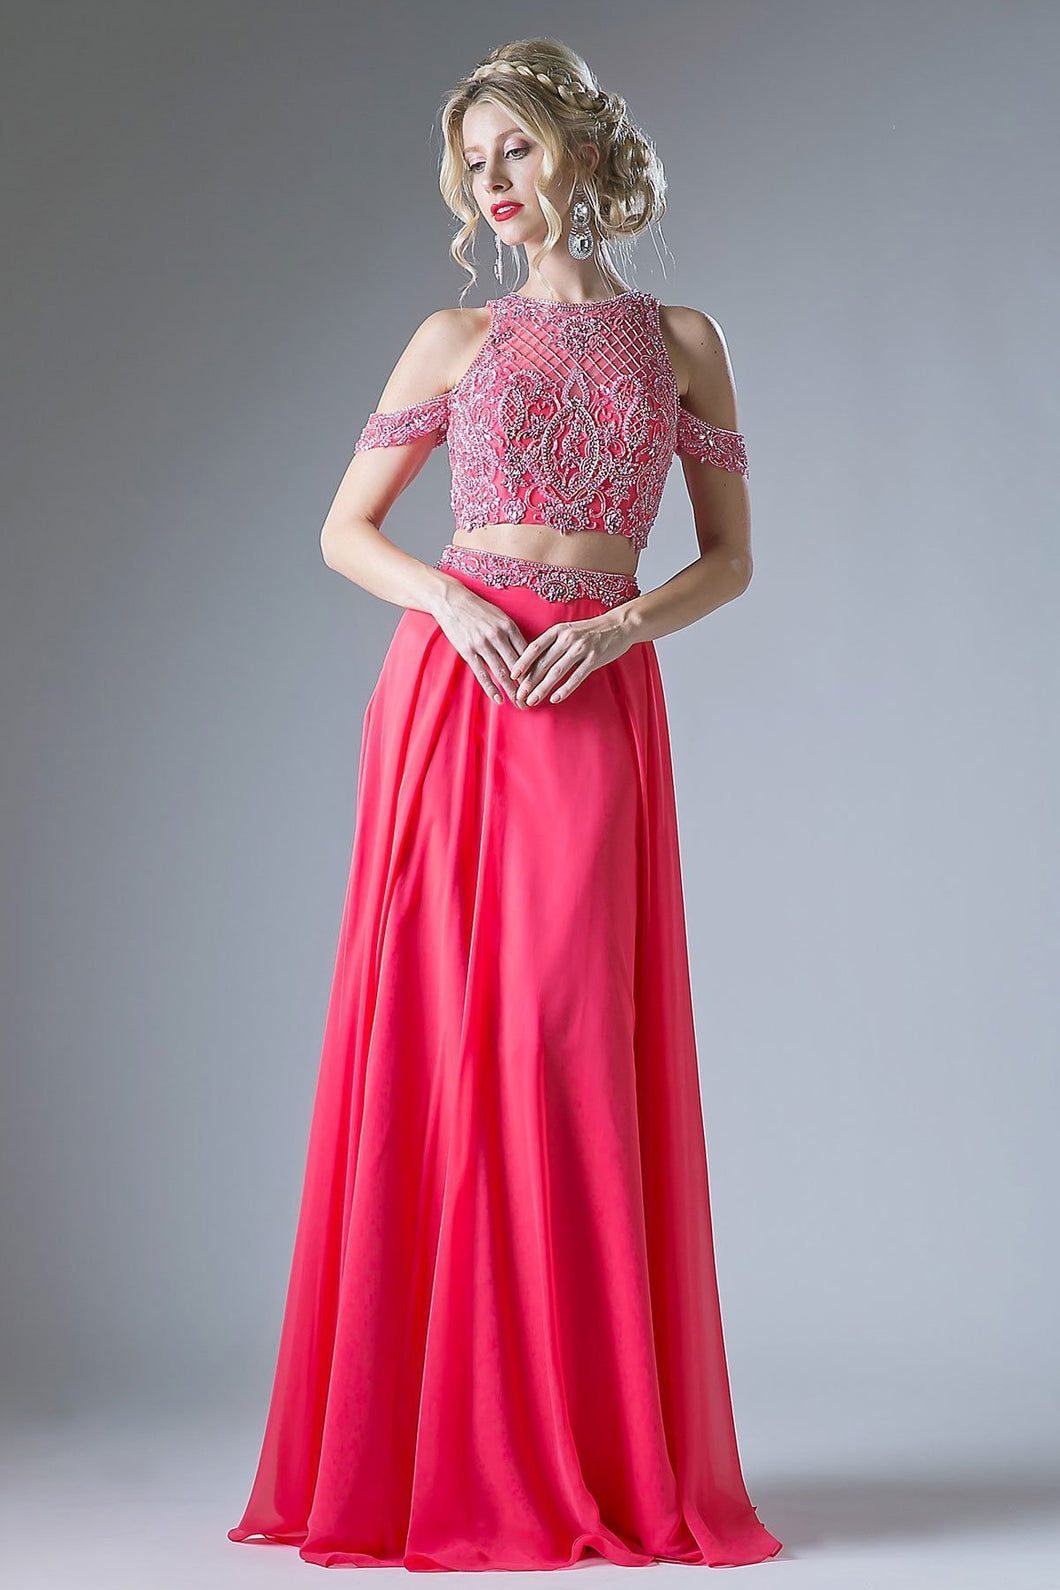 Set Celebrity Prom Gowns CD71232-Prom Dresses-smcfashion.com